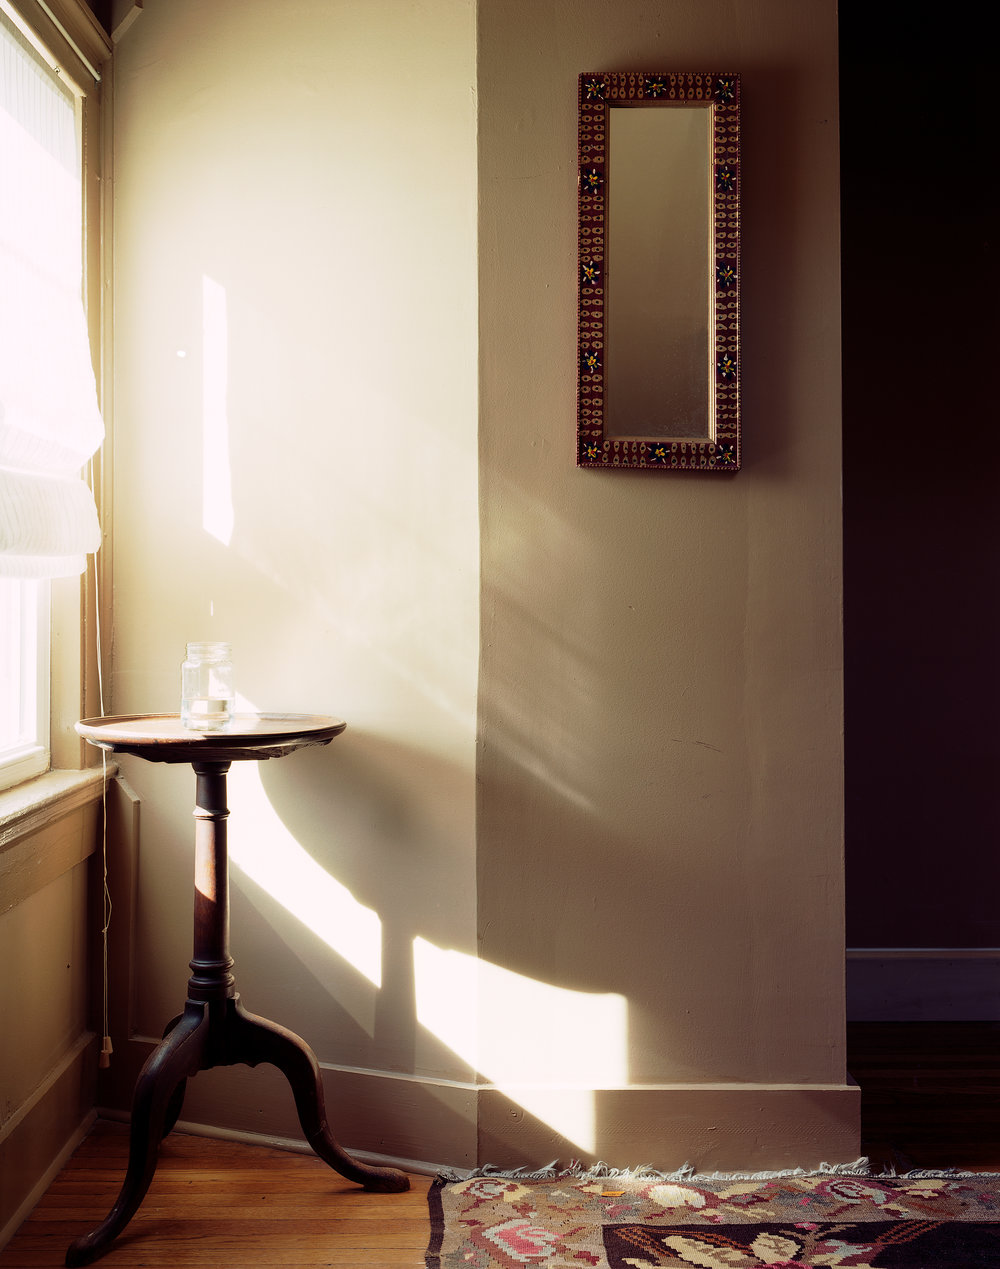 Table and Glass, 2008